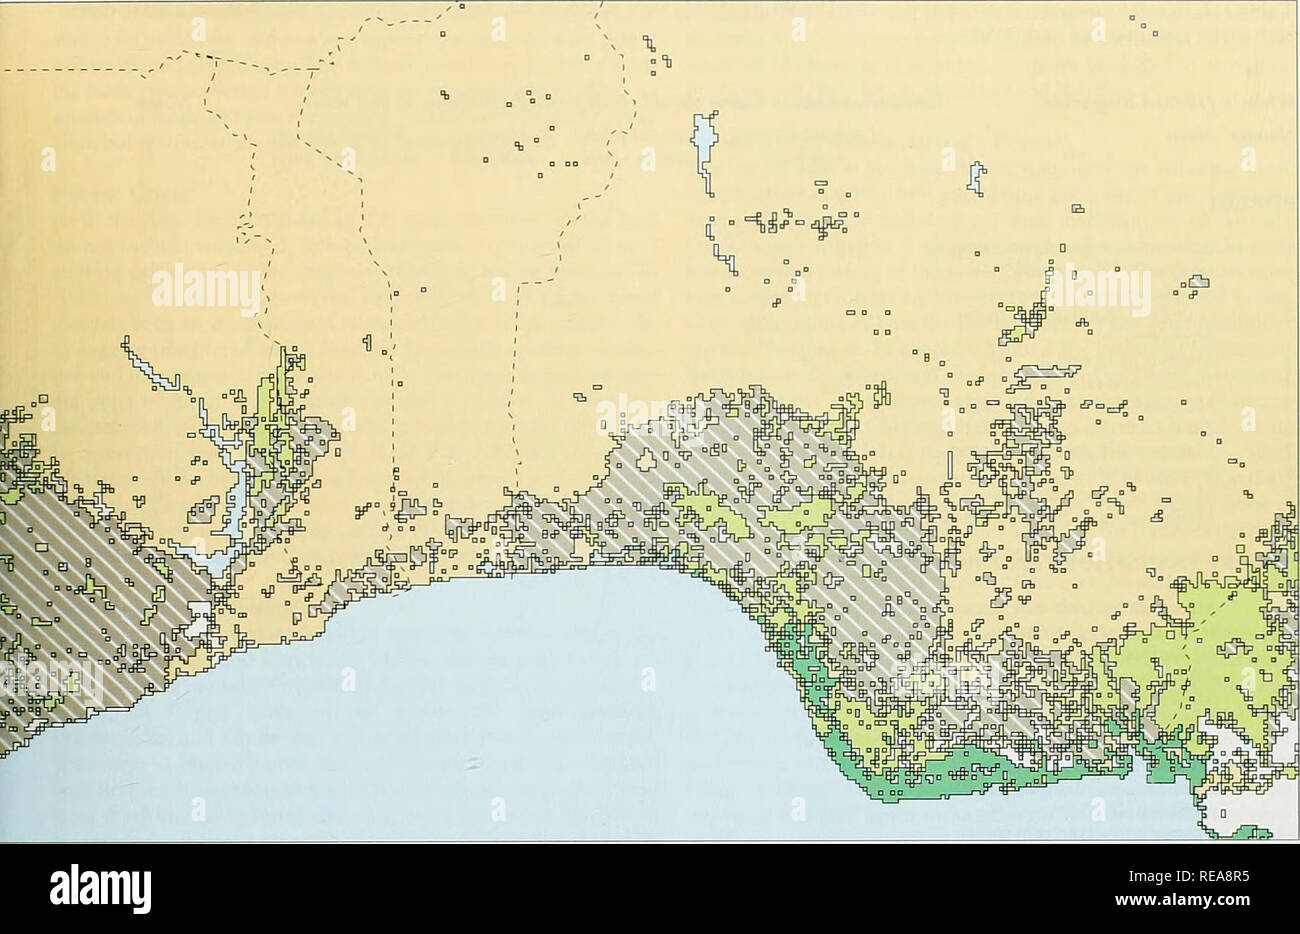 It's warm in the summer, but it gets cool in the fall, and cold in the winter. The Conservation Atlas Of Tropical Forests Africa Introduction Of Resolution Of Map 21 1 The Whole Of The Coastal Thicket And Grassland Zone As Defined By The Vegetation Zones Maps Pub Hshed